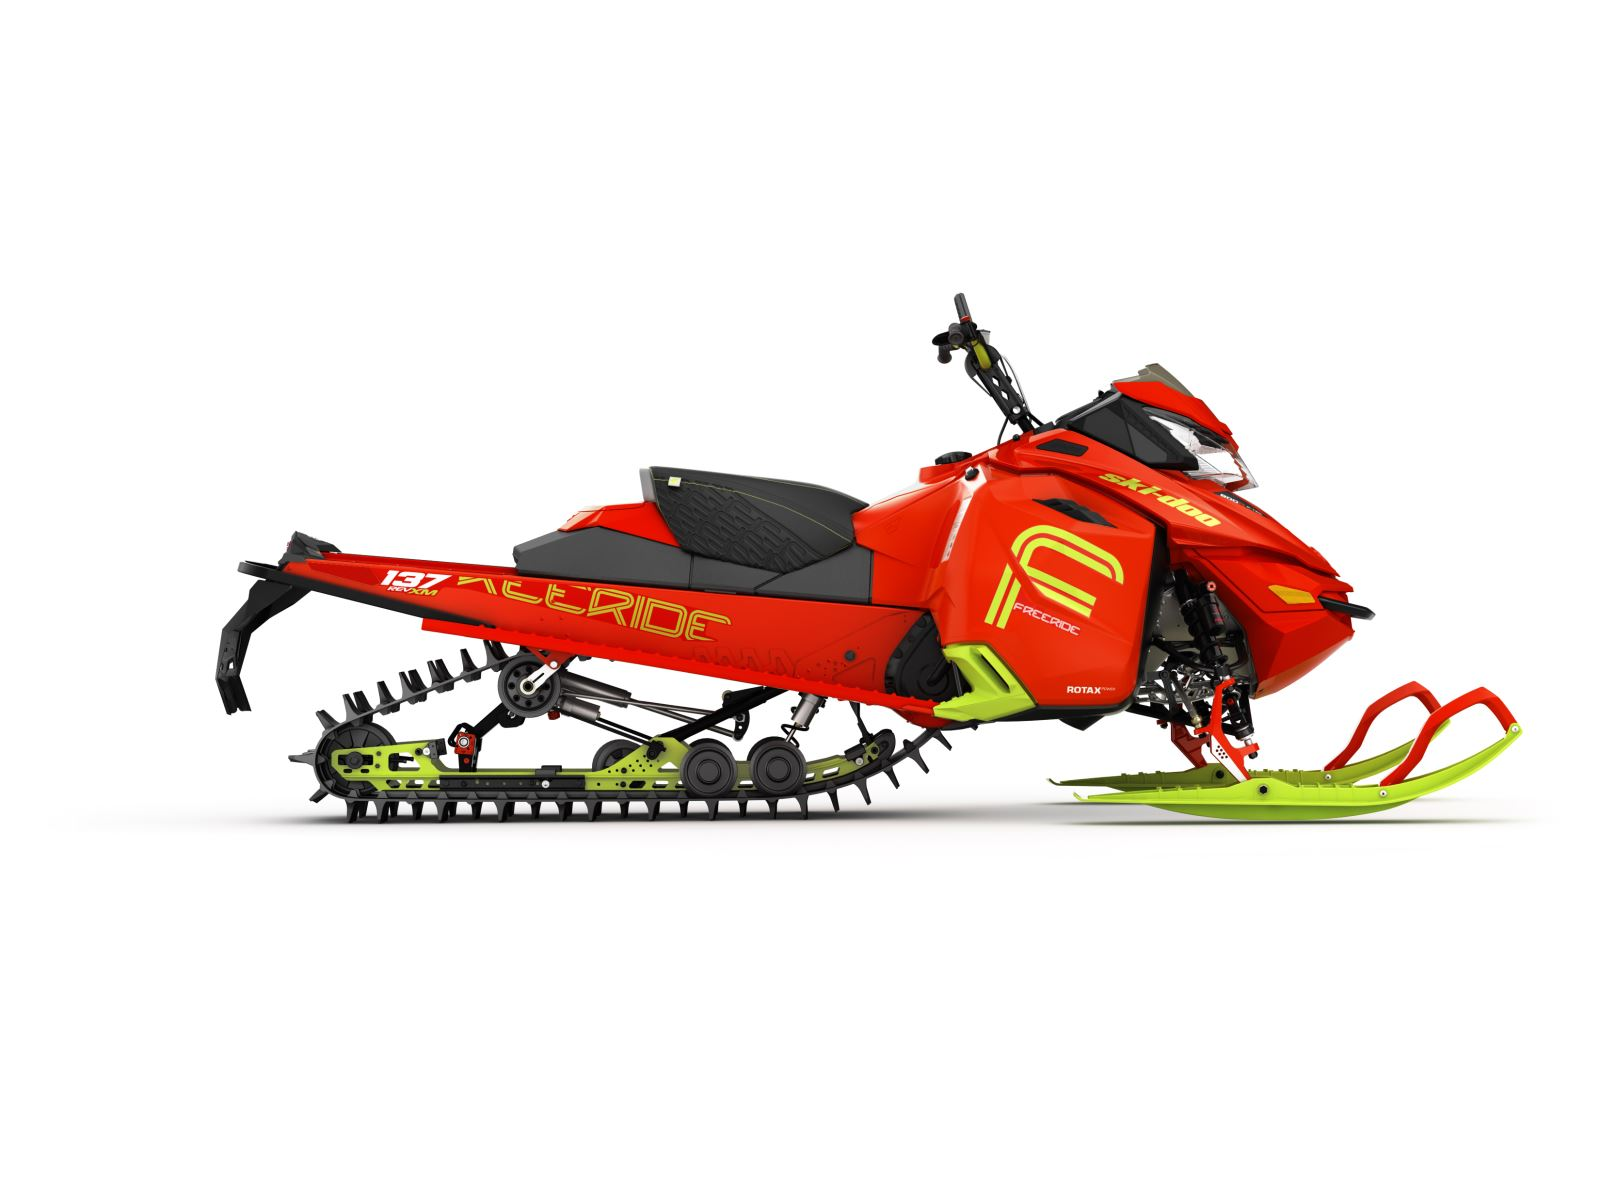 ski doo neu as - photo #38